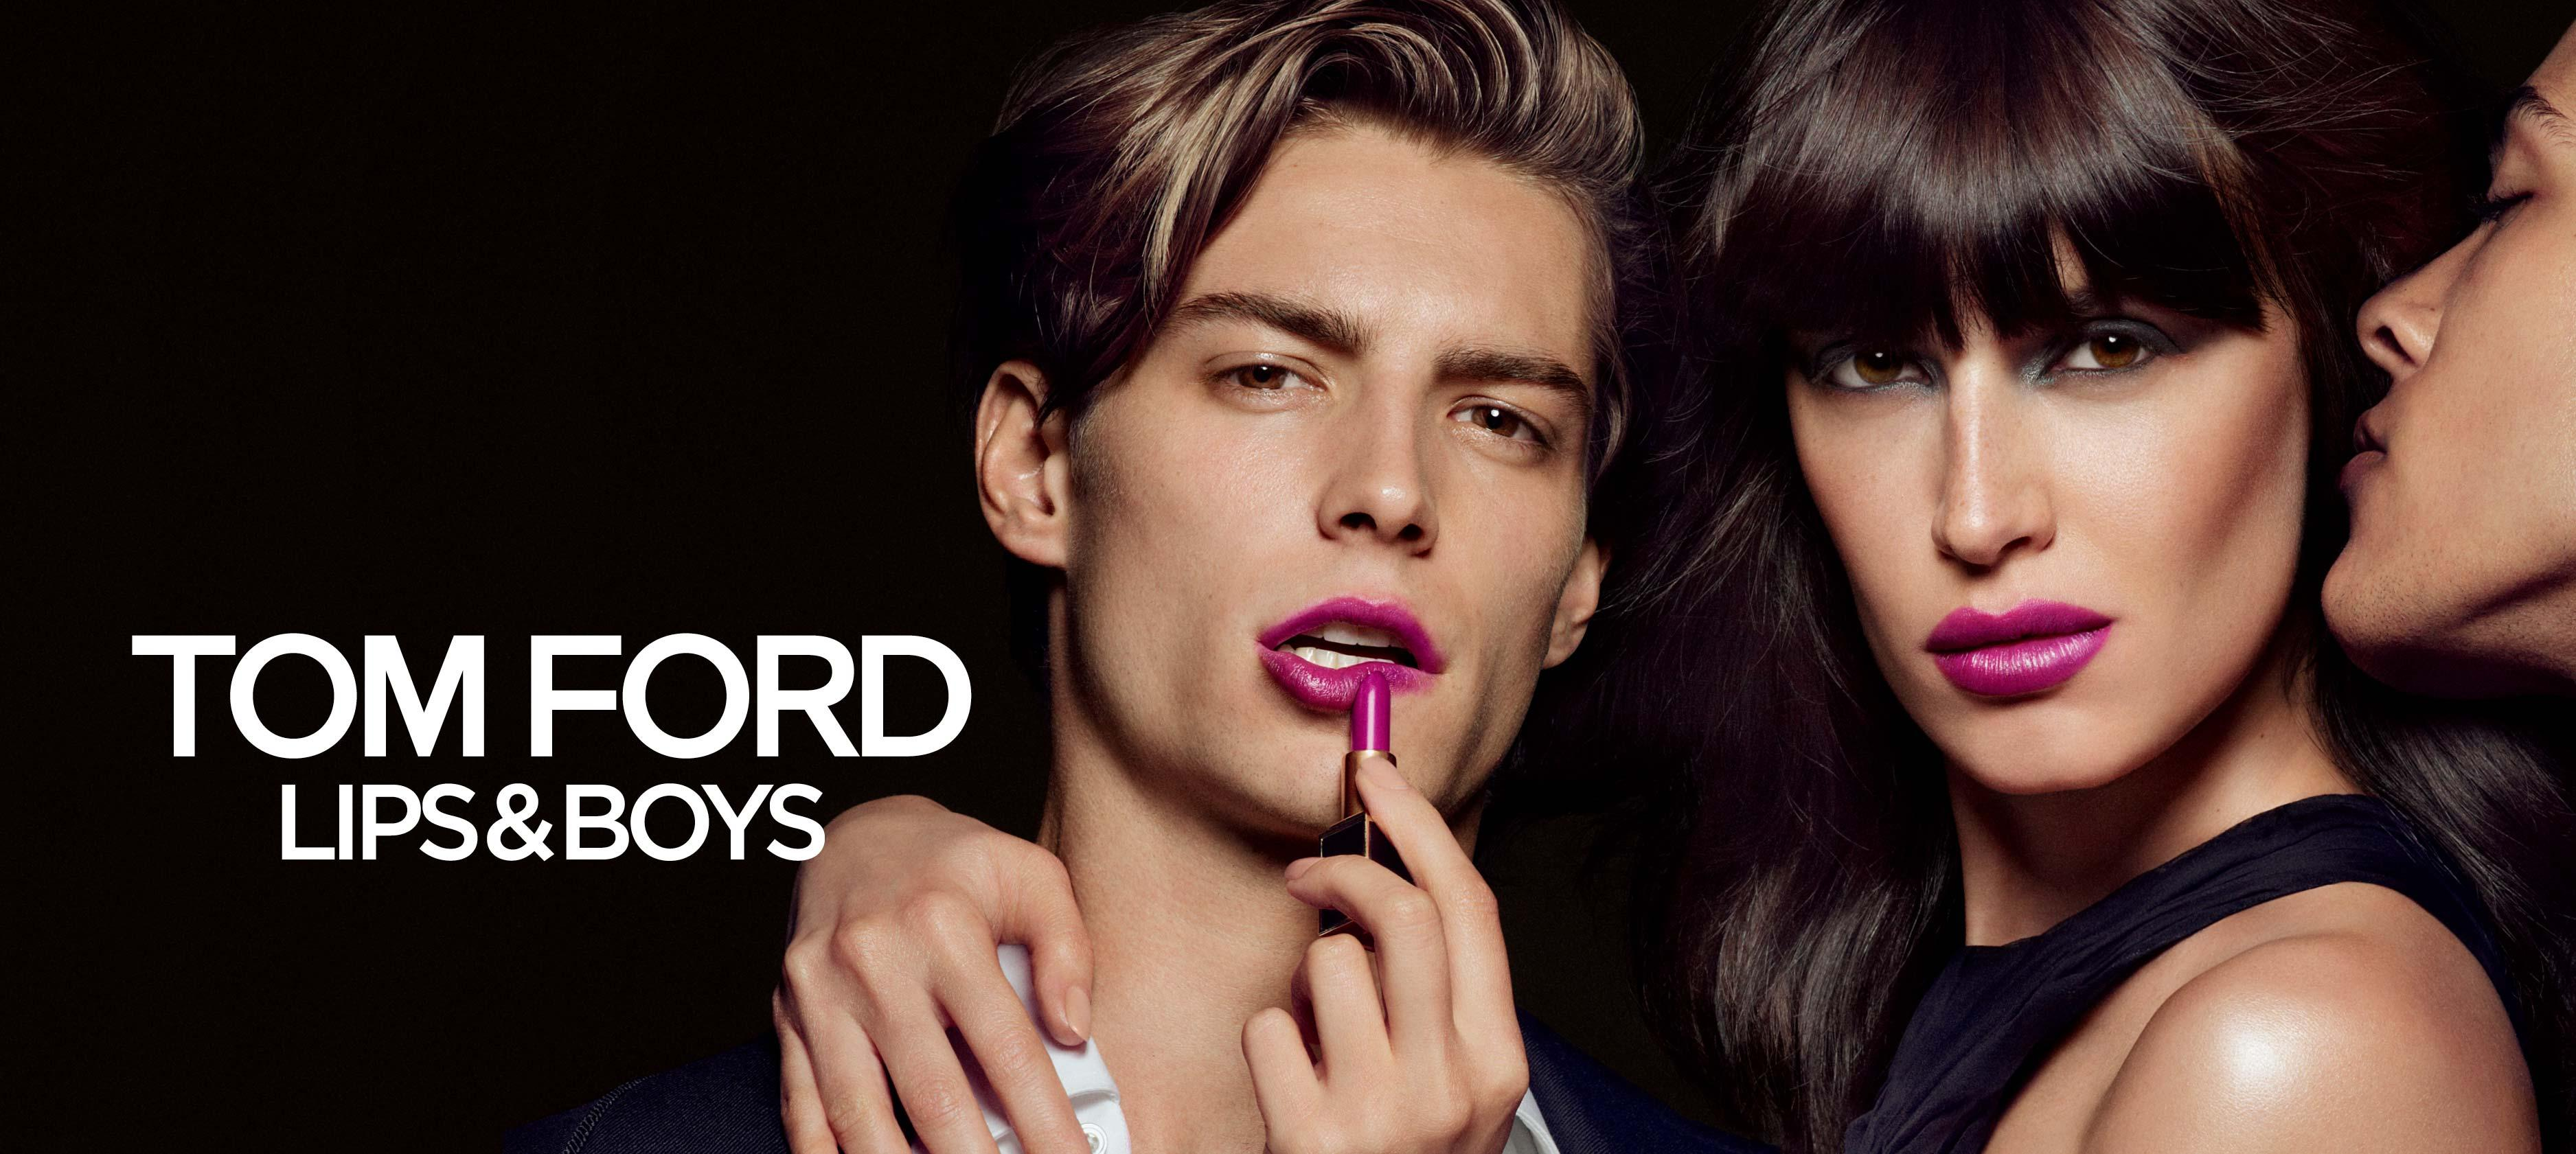 Tom-Ford-Lips-and-Boys-ad-campaign